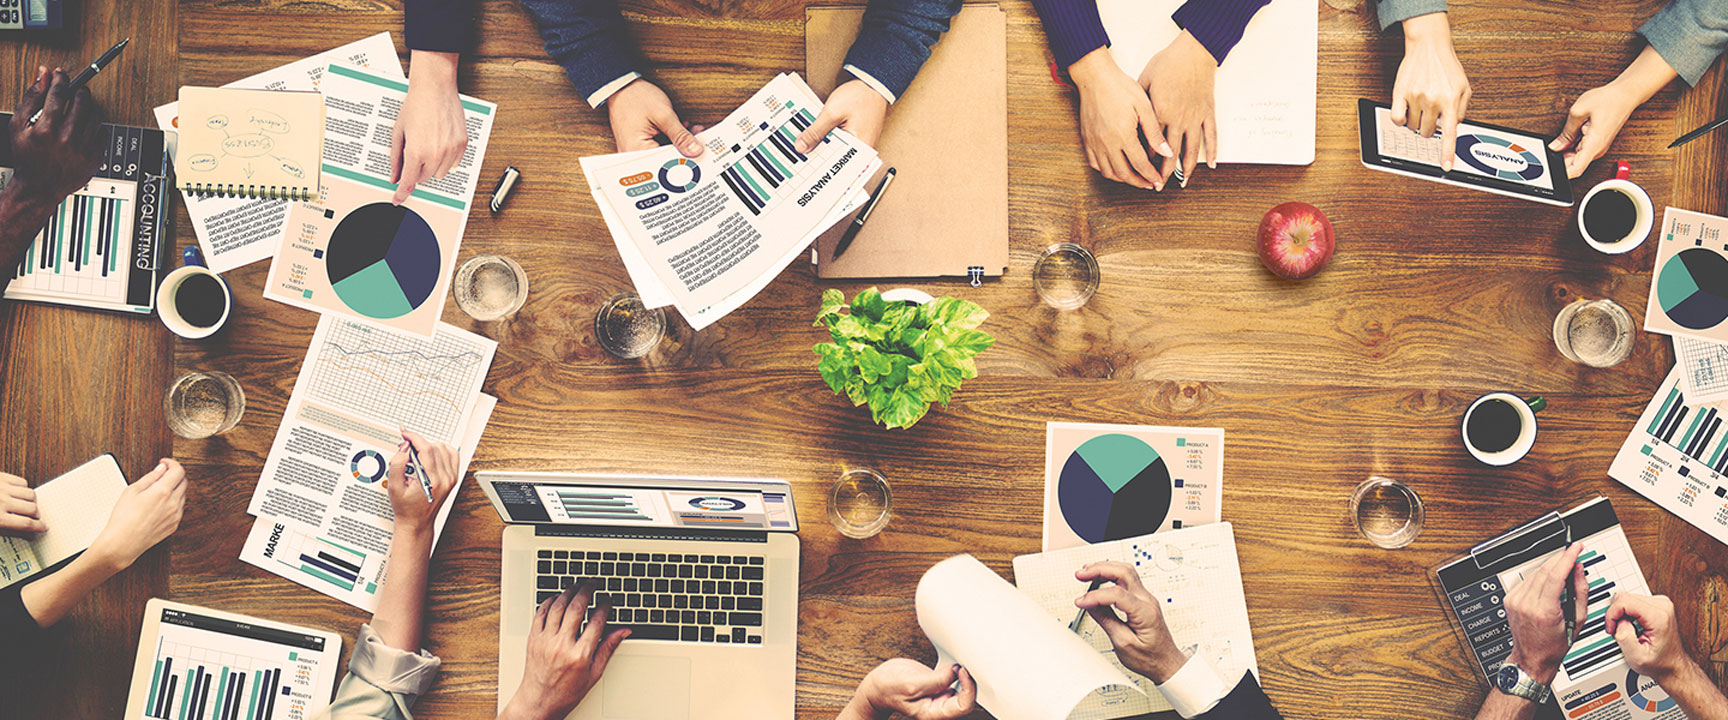 Joe Produce: Top 5 Ways to Retain Your Best EmployeesHappy employees work harder and smarter—and they stay with the company longer.